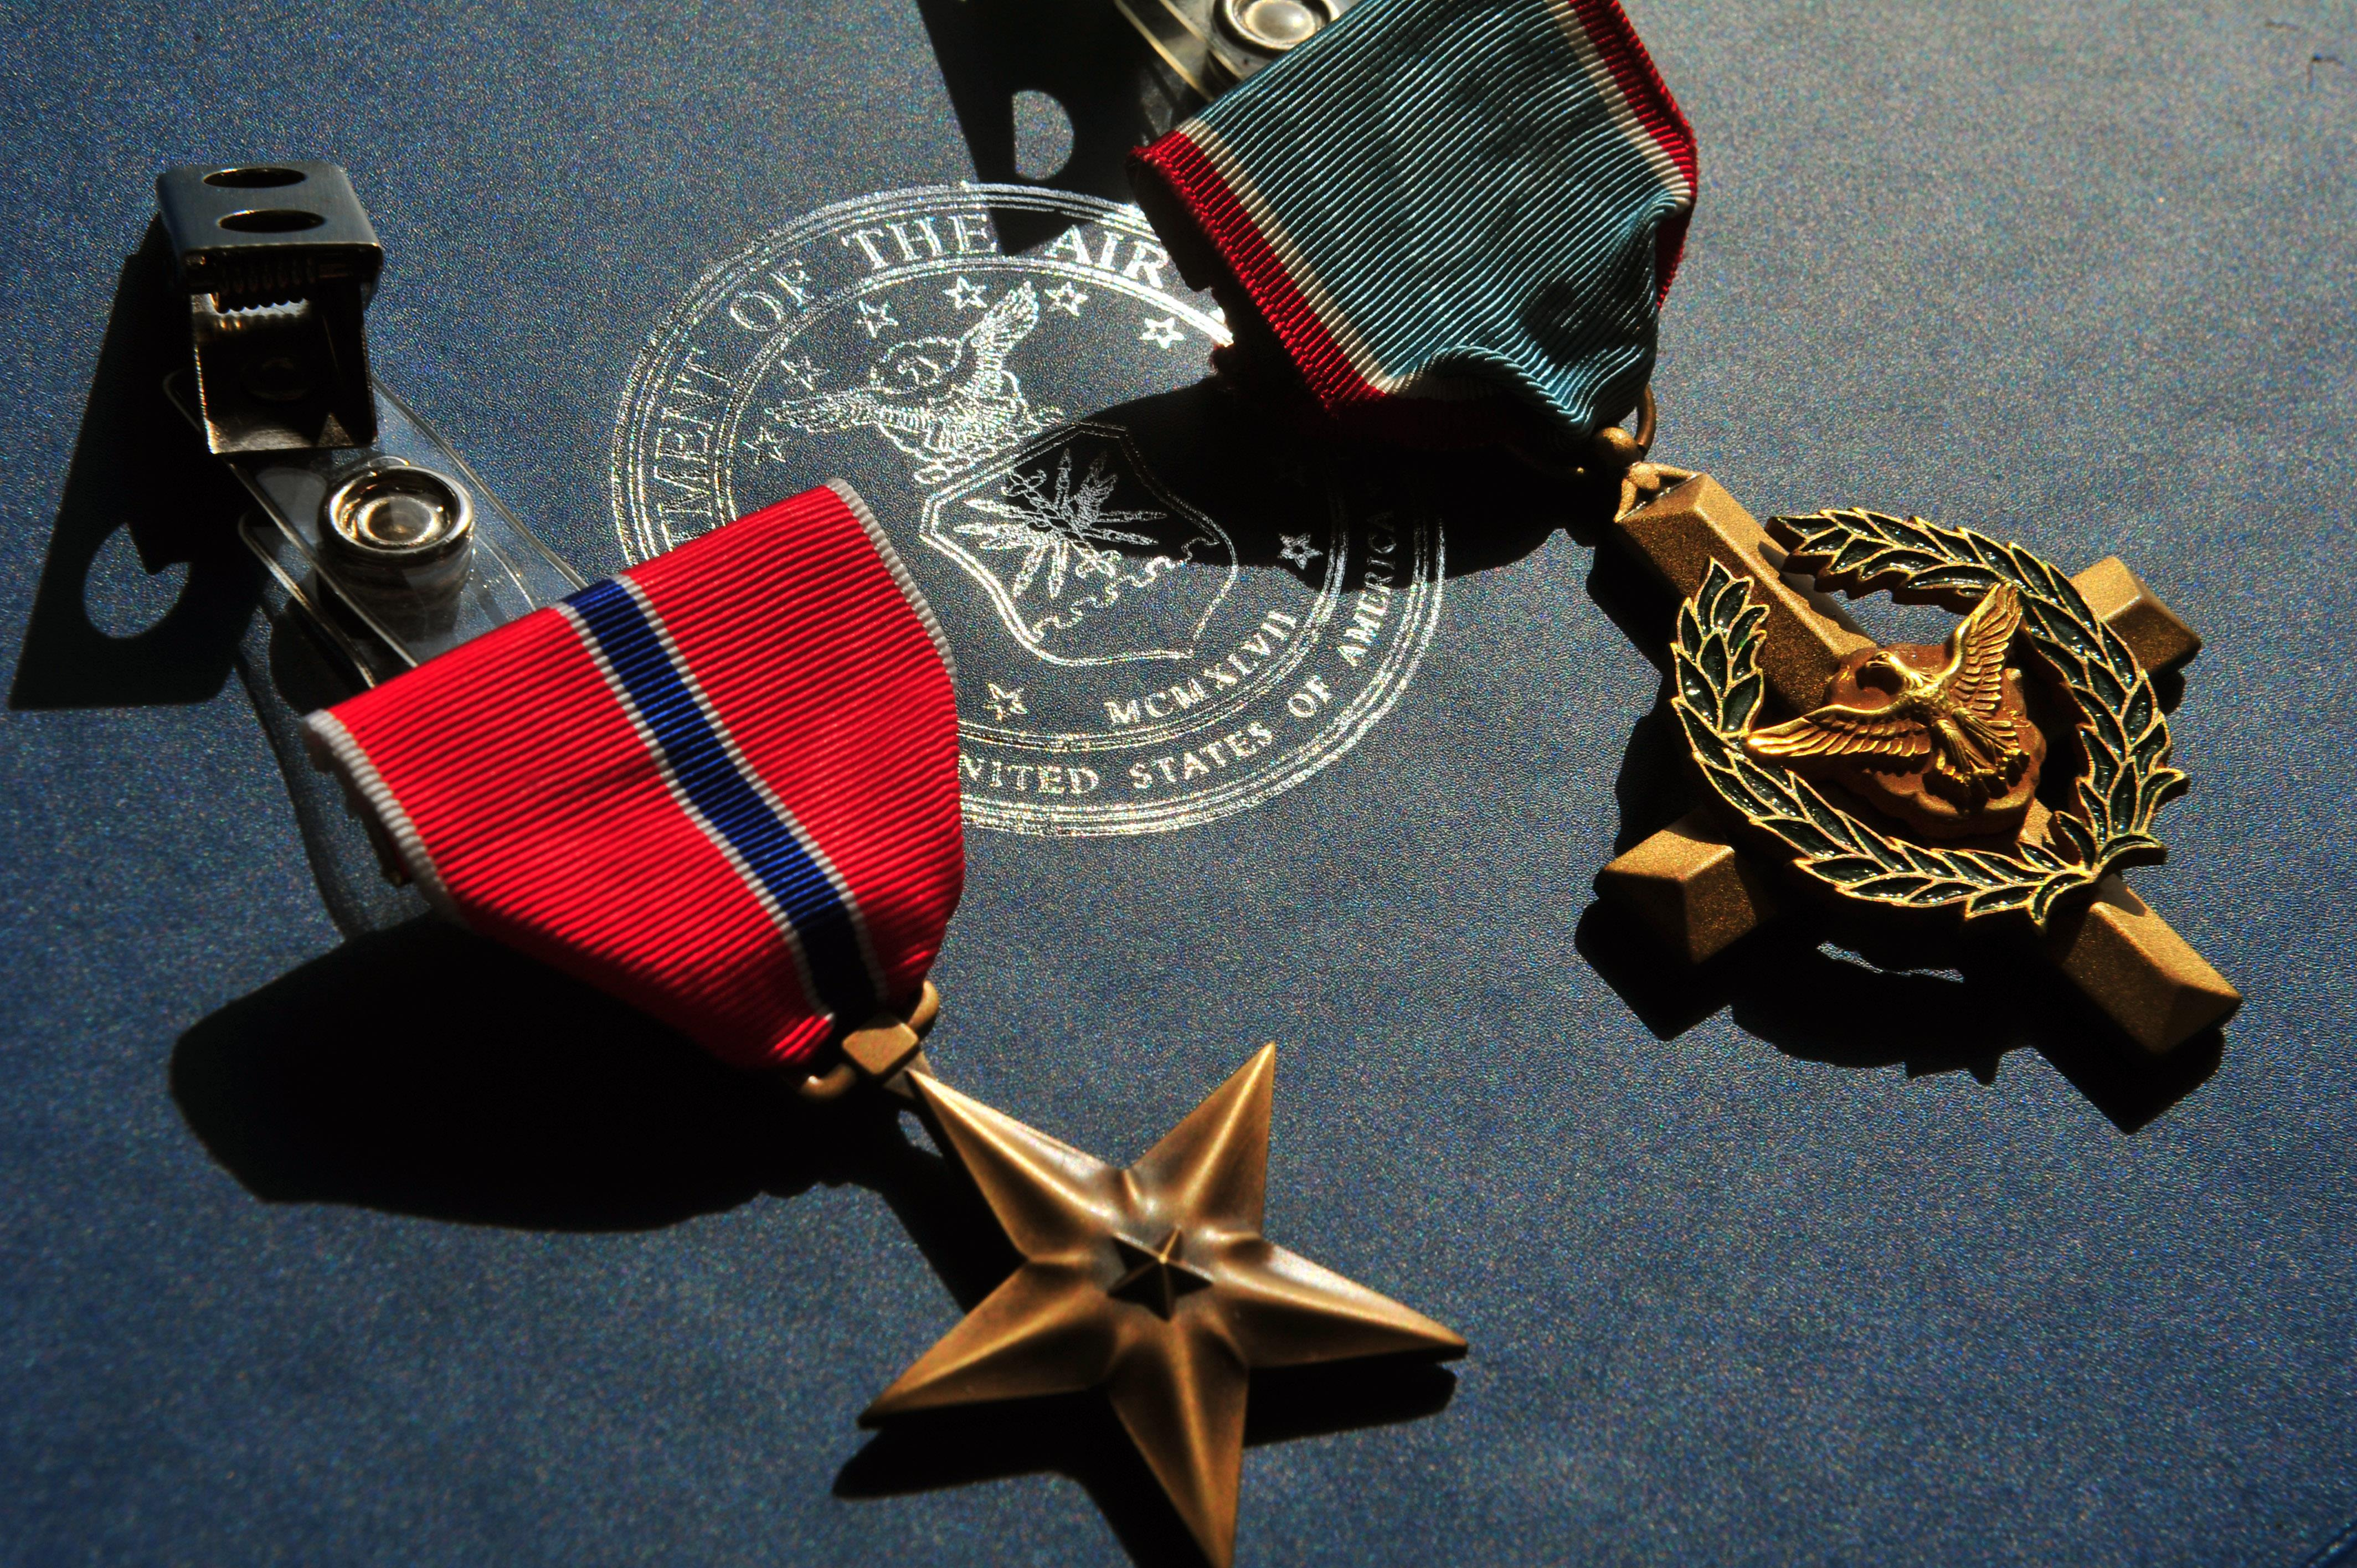 Wearing Of Military Awards With Civilian Clothes